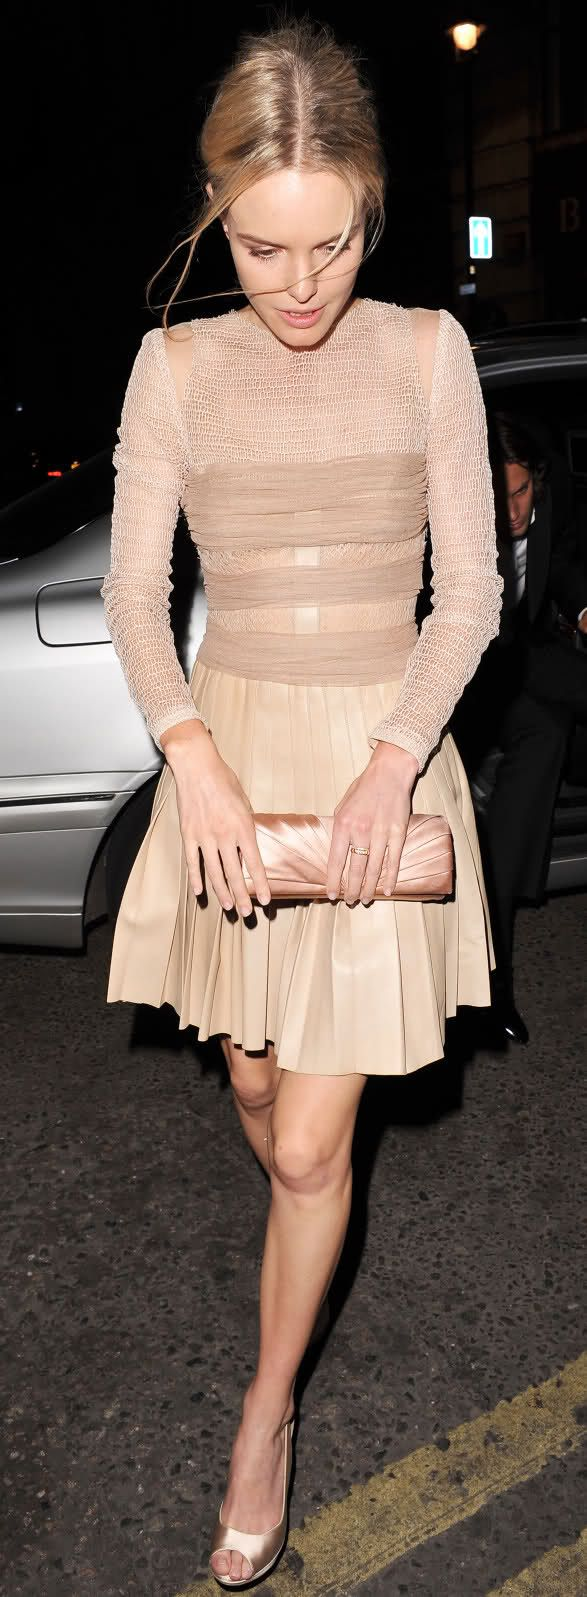 Kate Bosworth in Blush